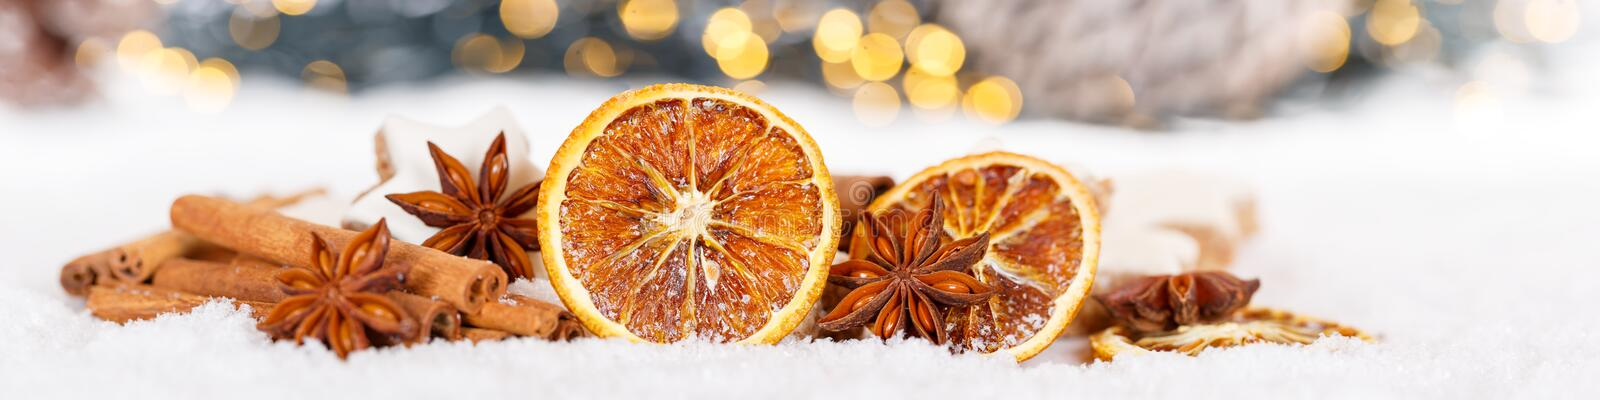 Christmas decoration orange fruit herbs baking bakery banner snow winter royalty free stock photos